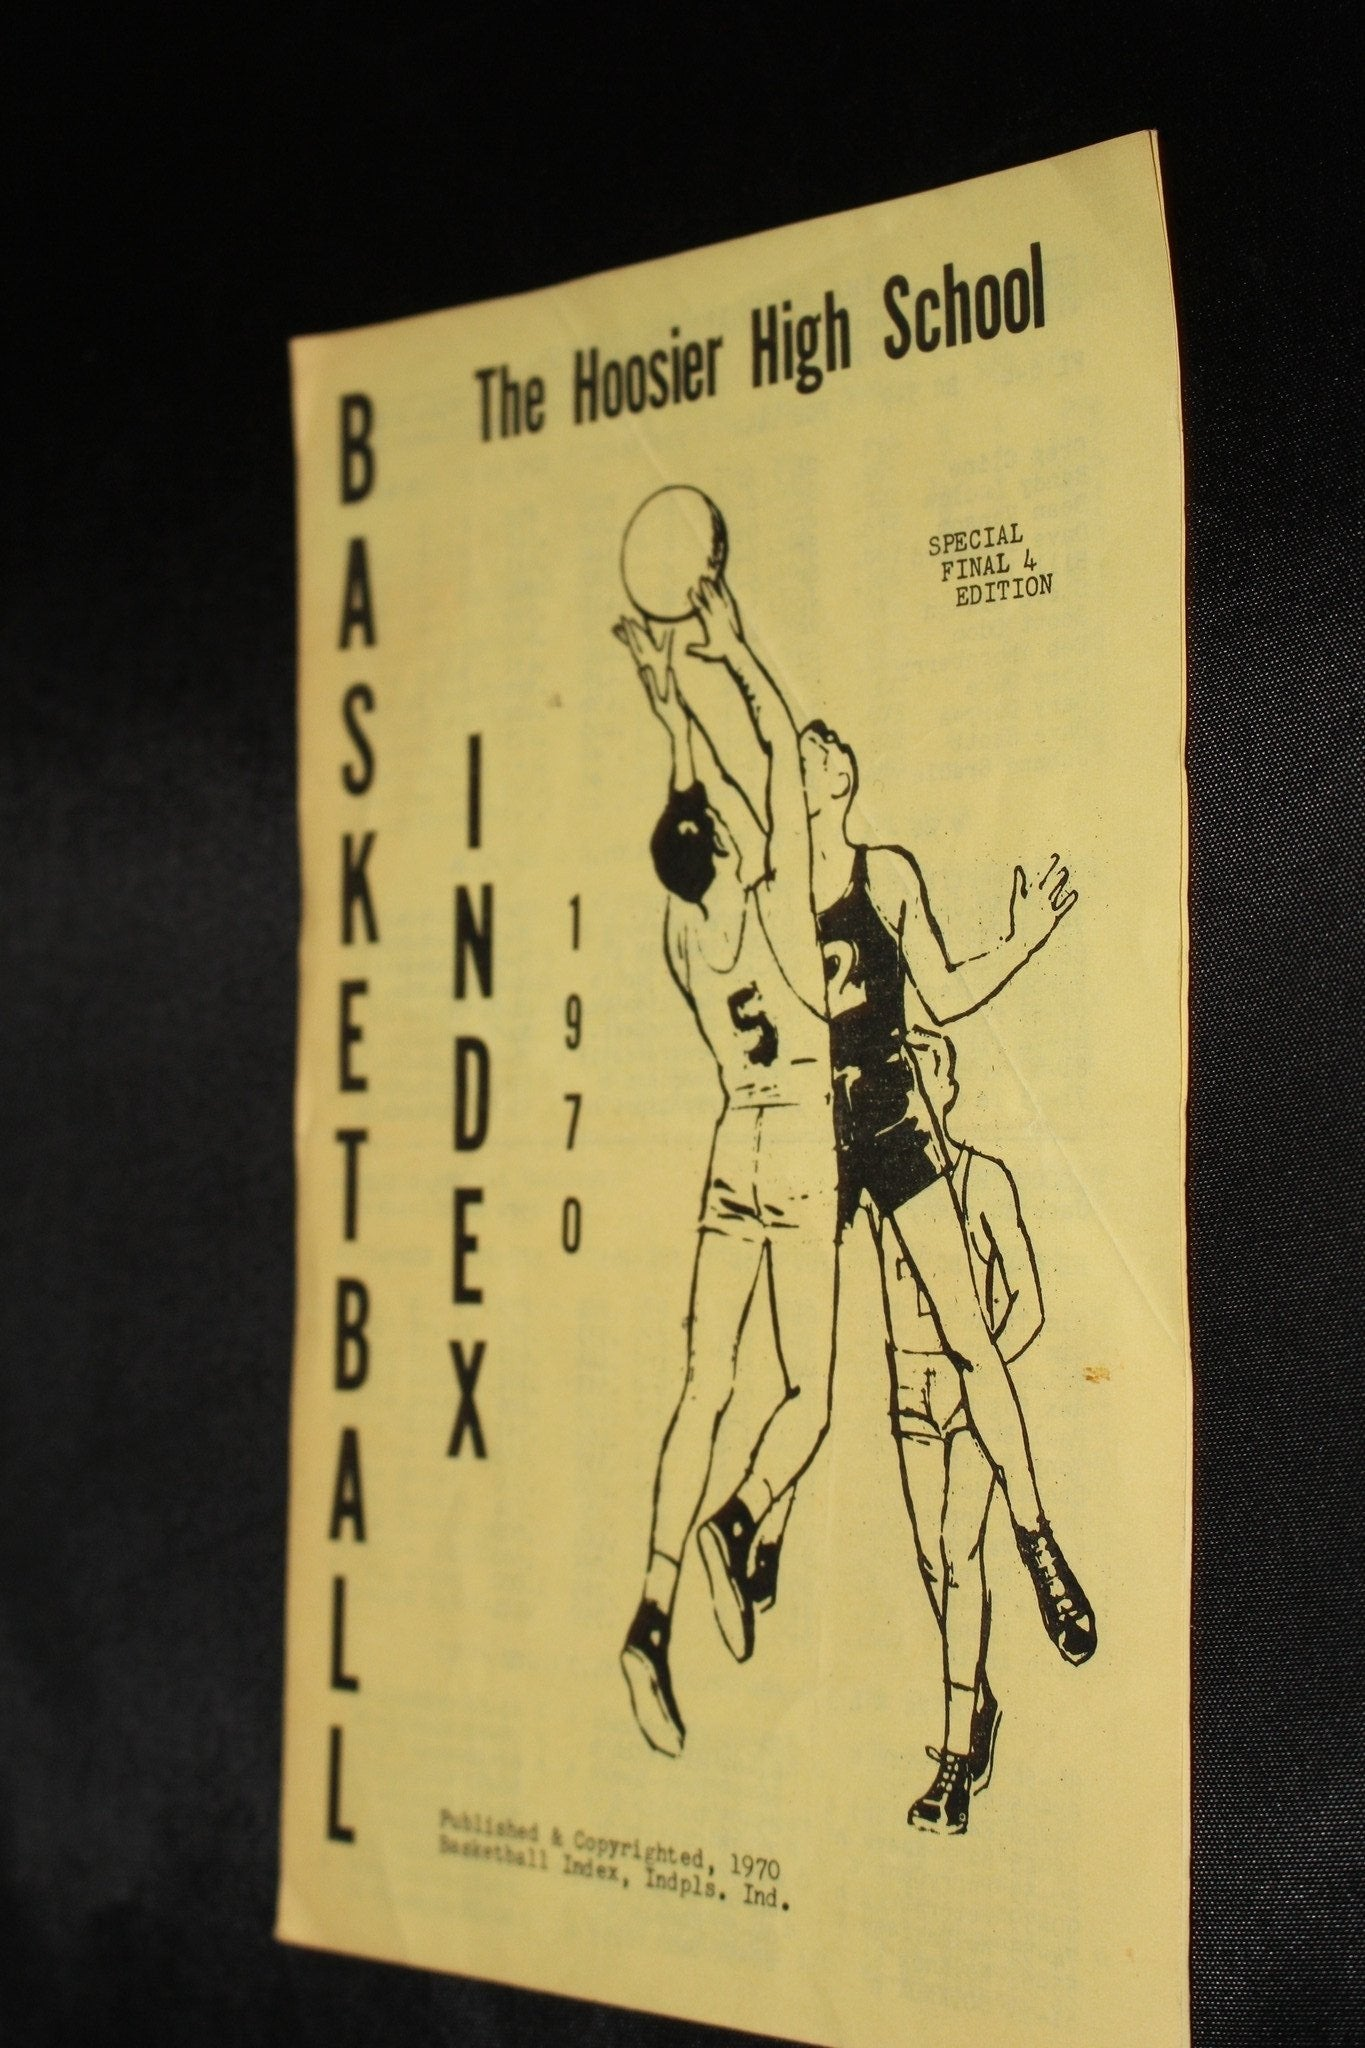 1970 Hoosier High School Basketball Index Special Final 4 Edition - Vintage Indy Sports